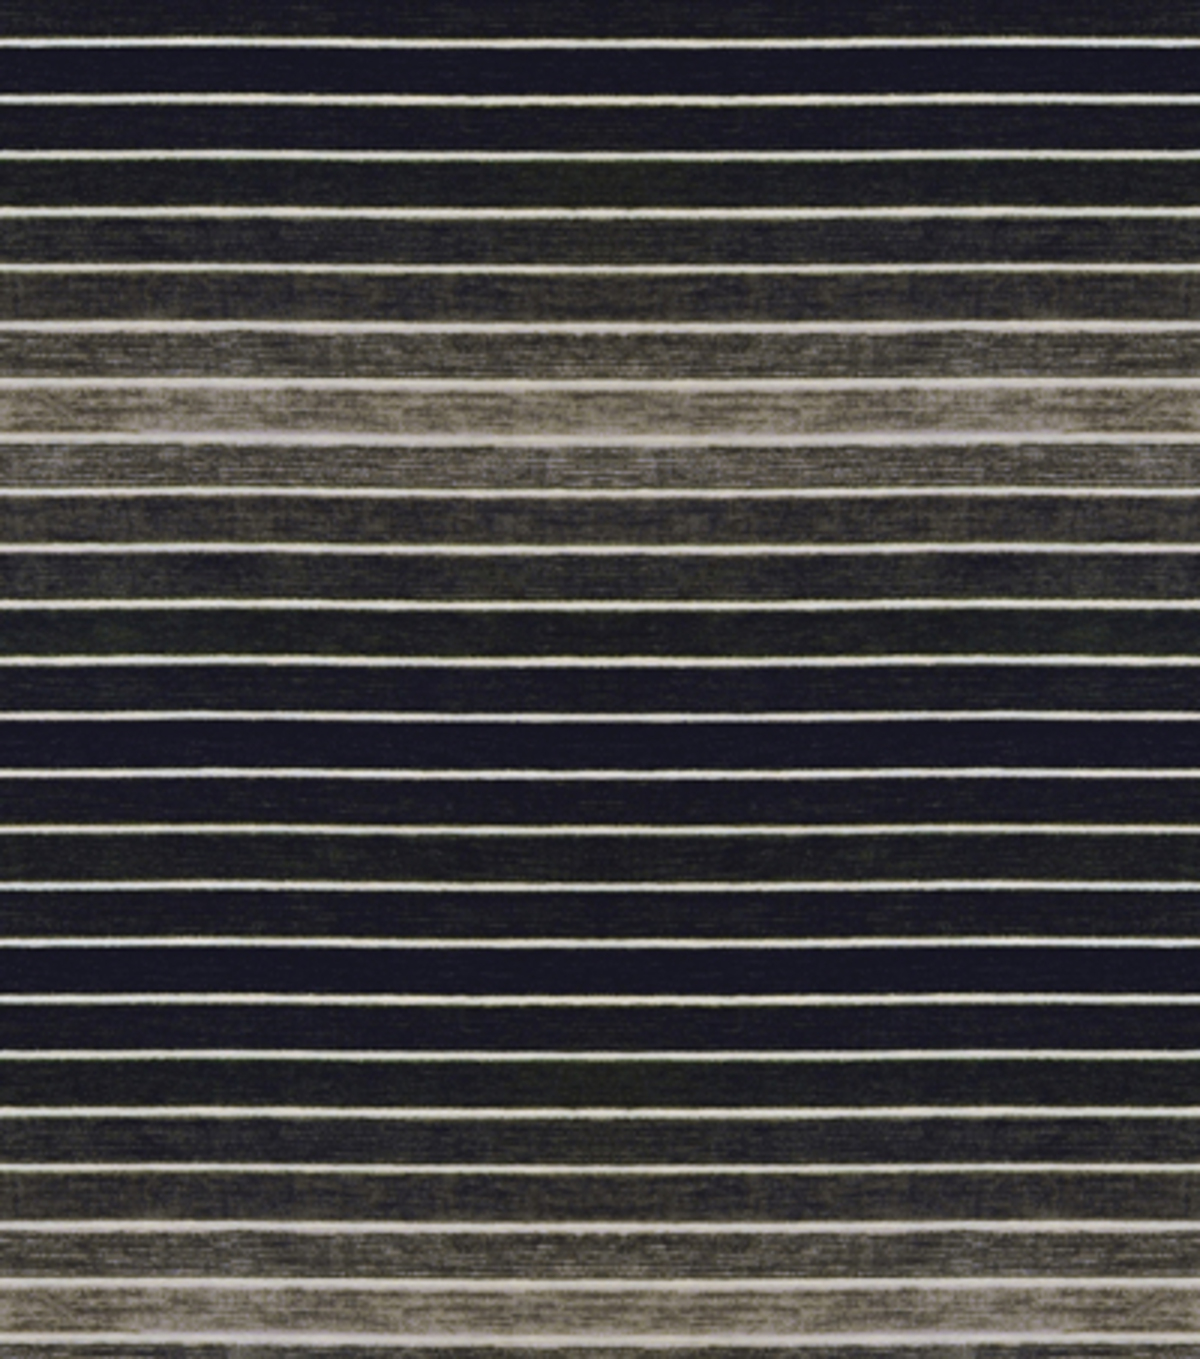 Home Decor 8\u0022x8\u0022 Fabric Swatch-Covington Spectra 9 Graphite